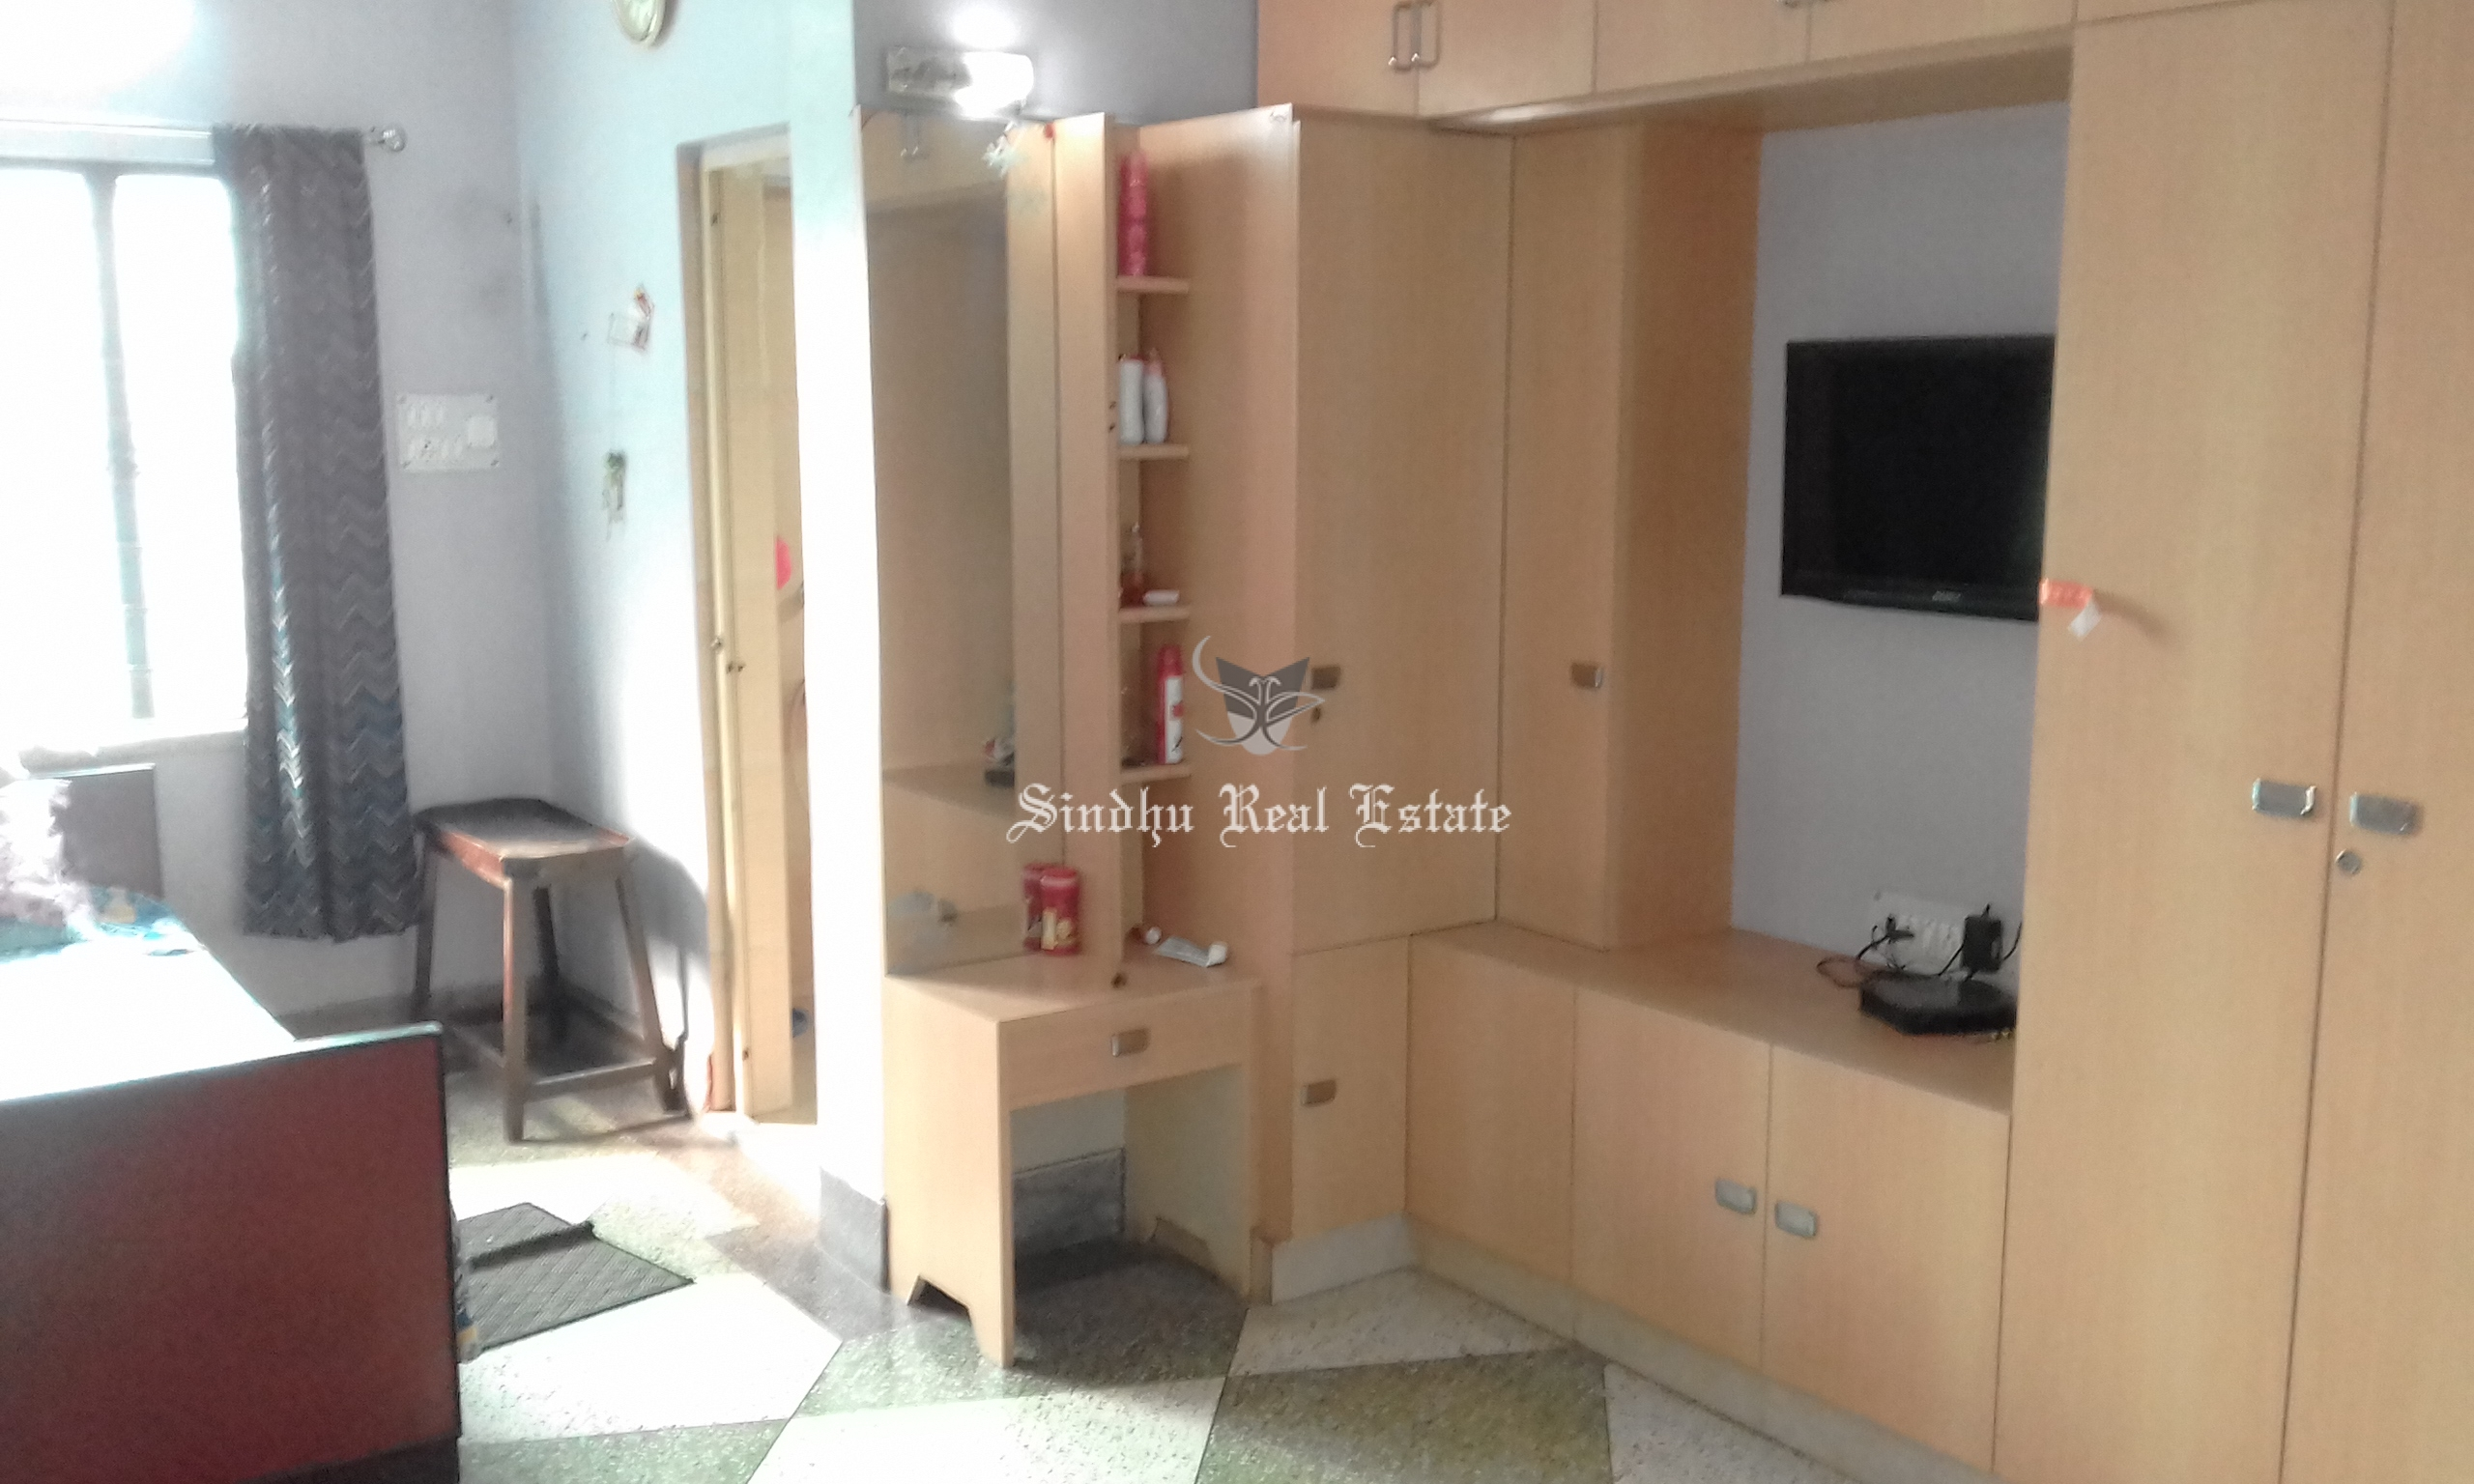 4 BHK furnished flat rent in Salt-lake location